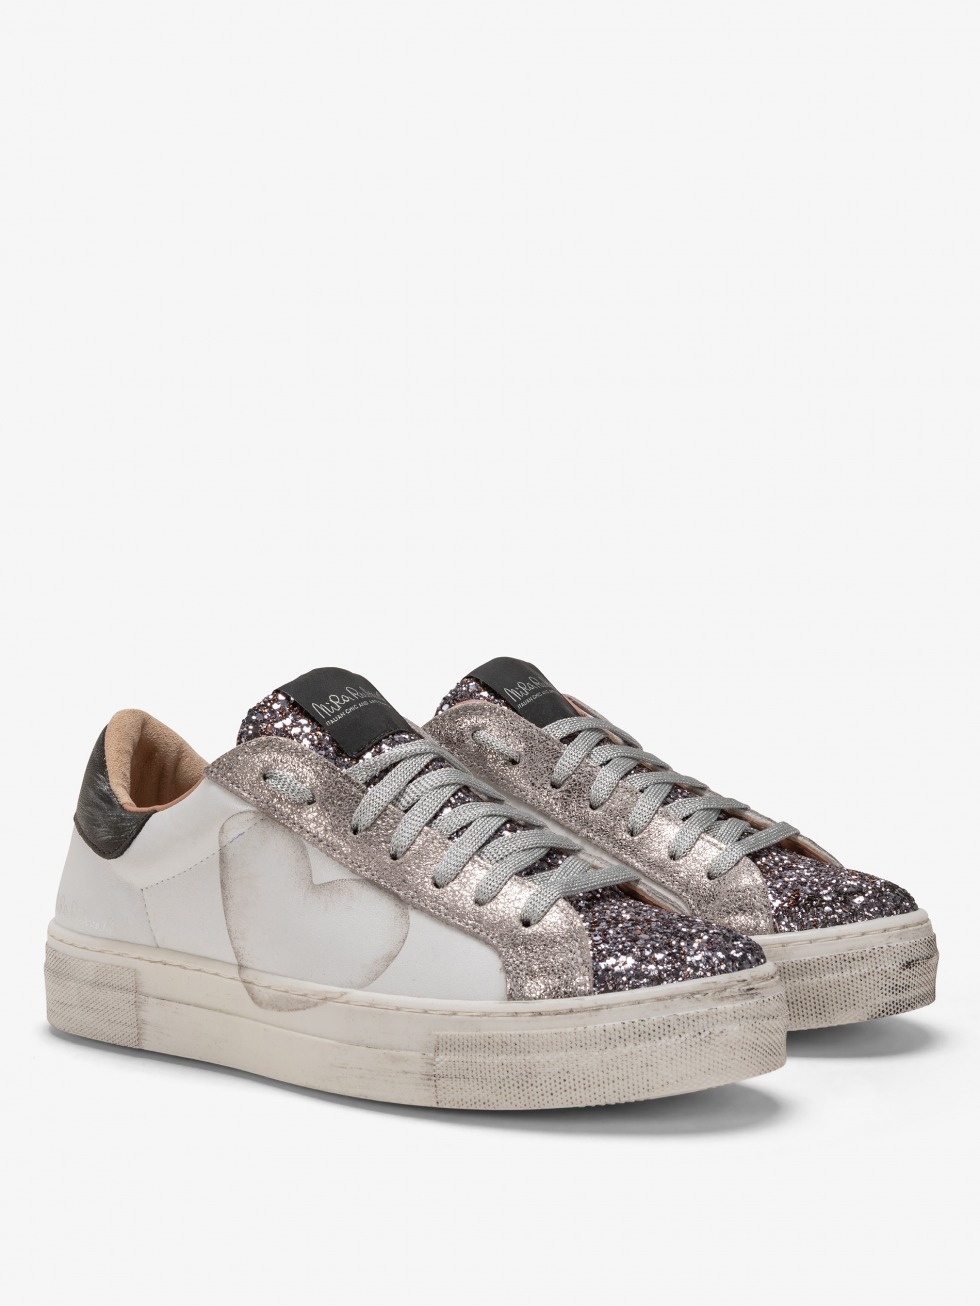 Martini Dazzling Silver Sneakers - Grey Heart